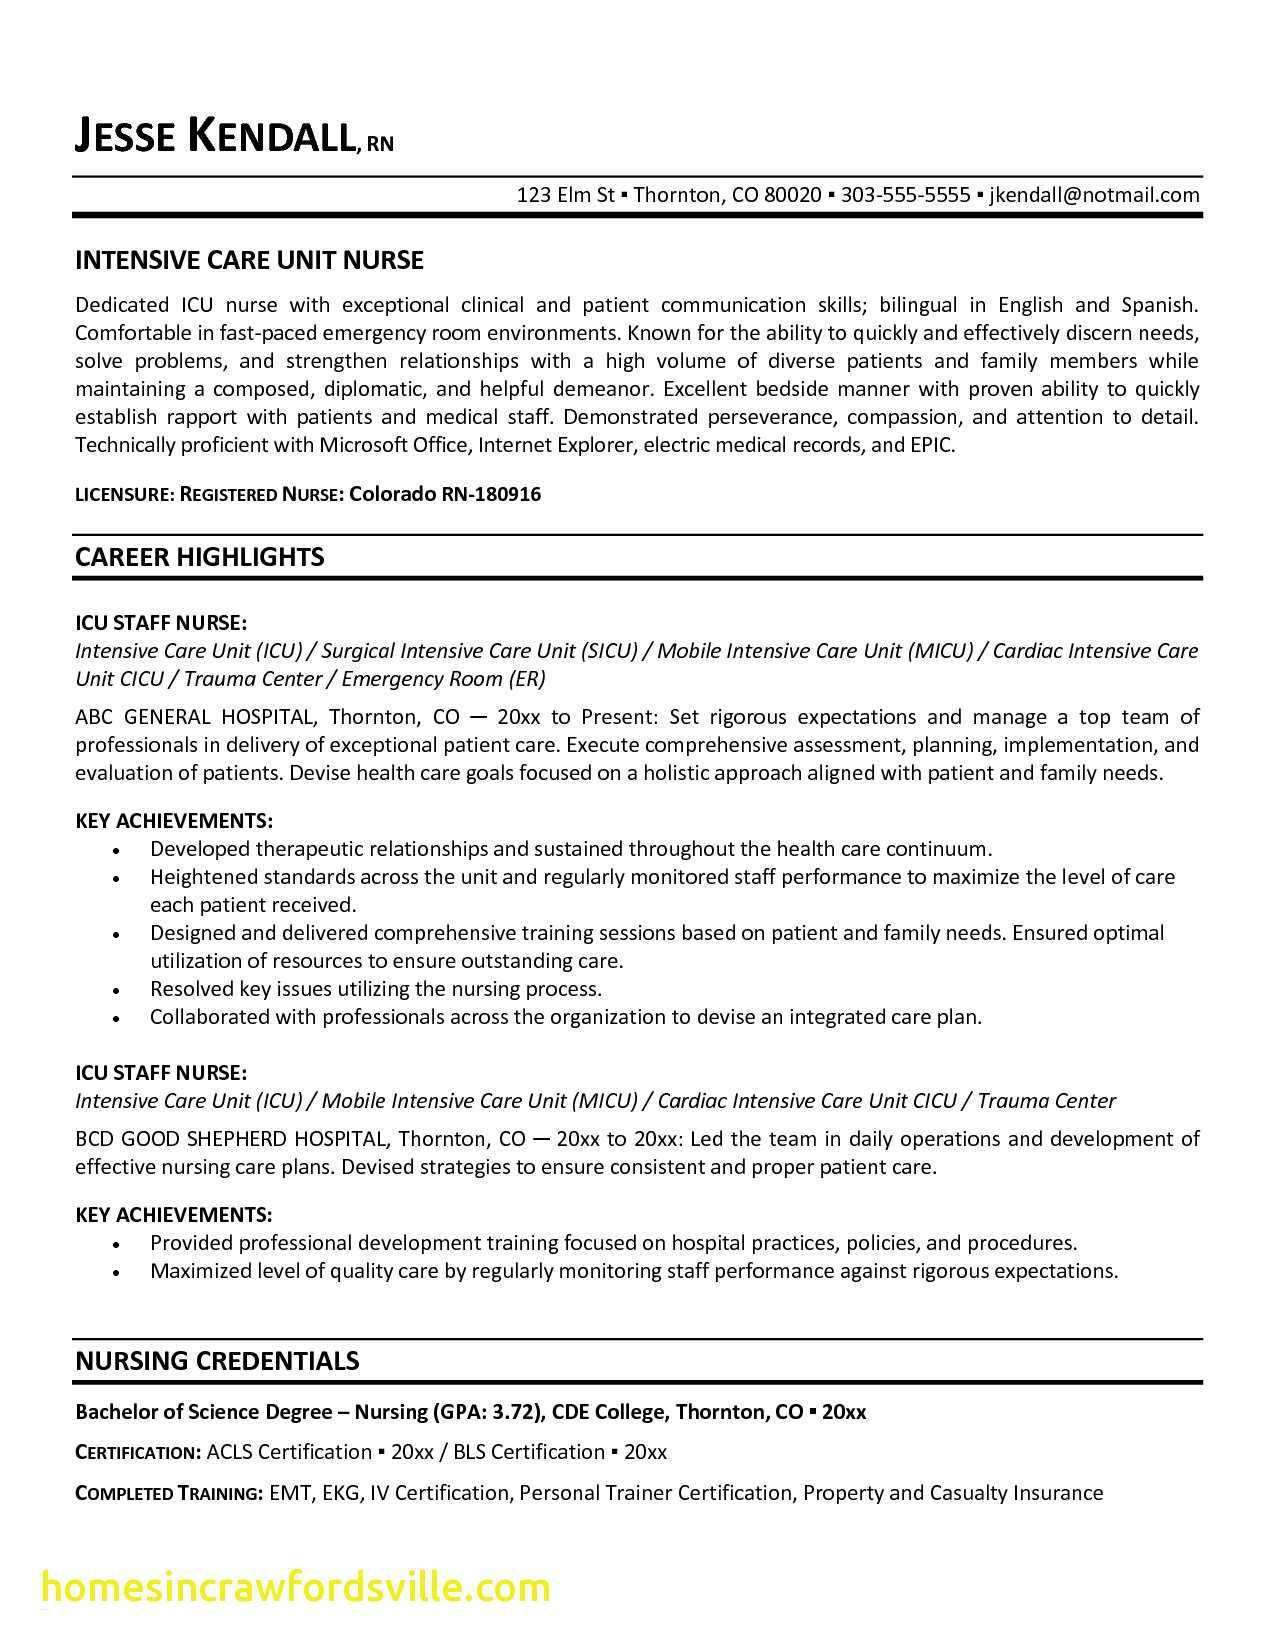 Pin By Personal On Resume Template